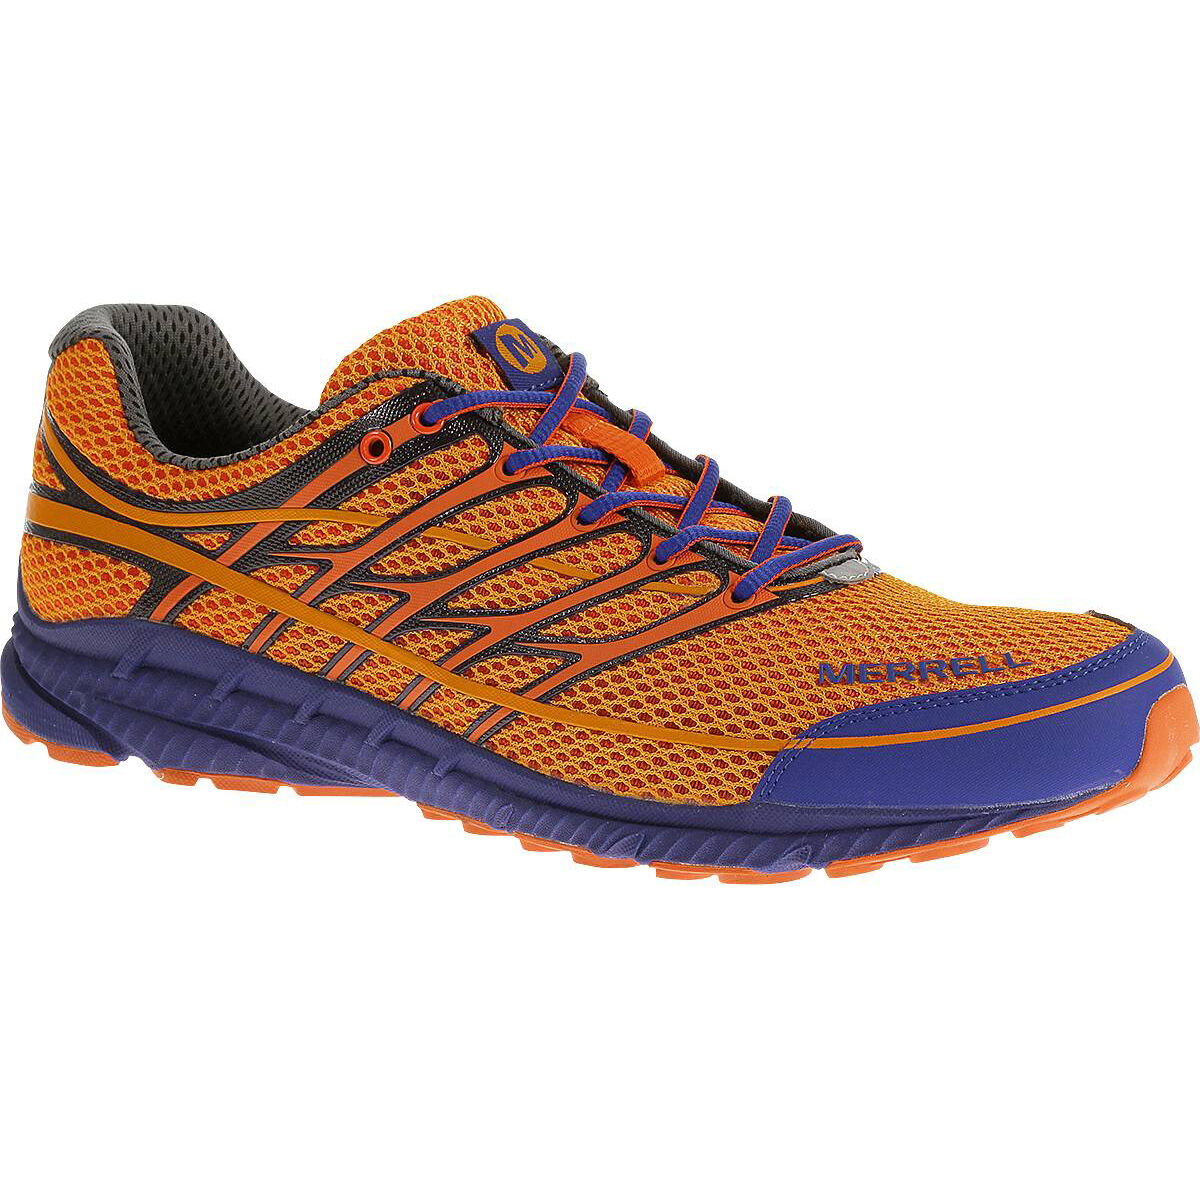 MERRELL Men's Mix Master Move 2 Trail Running Shoes, Royal Blue/Orange